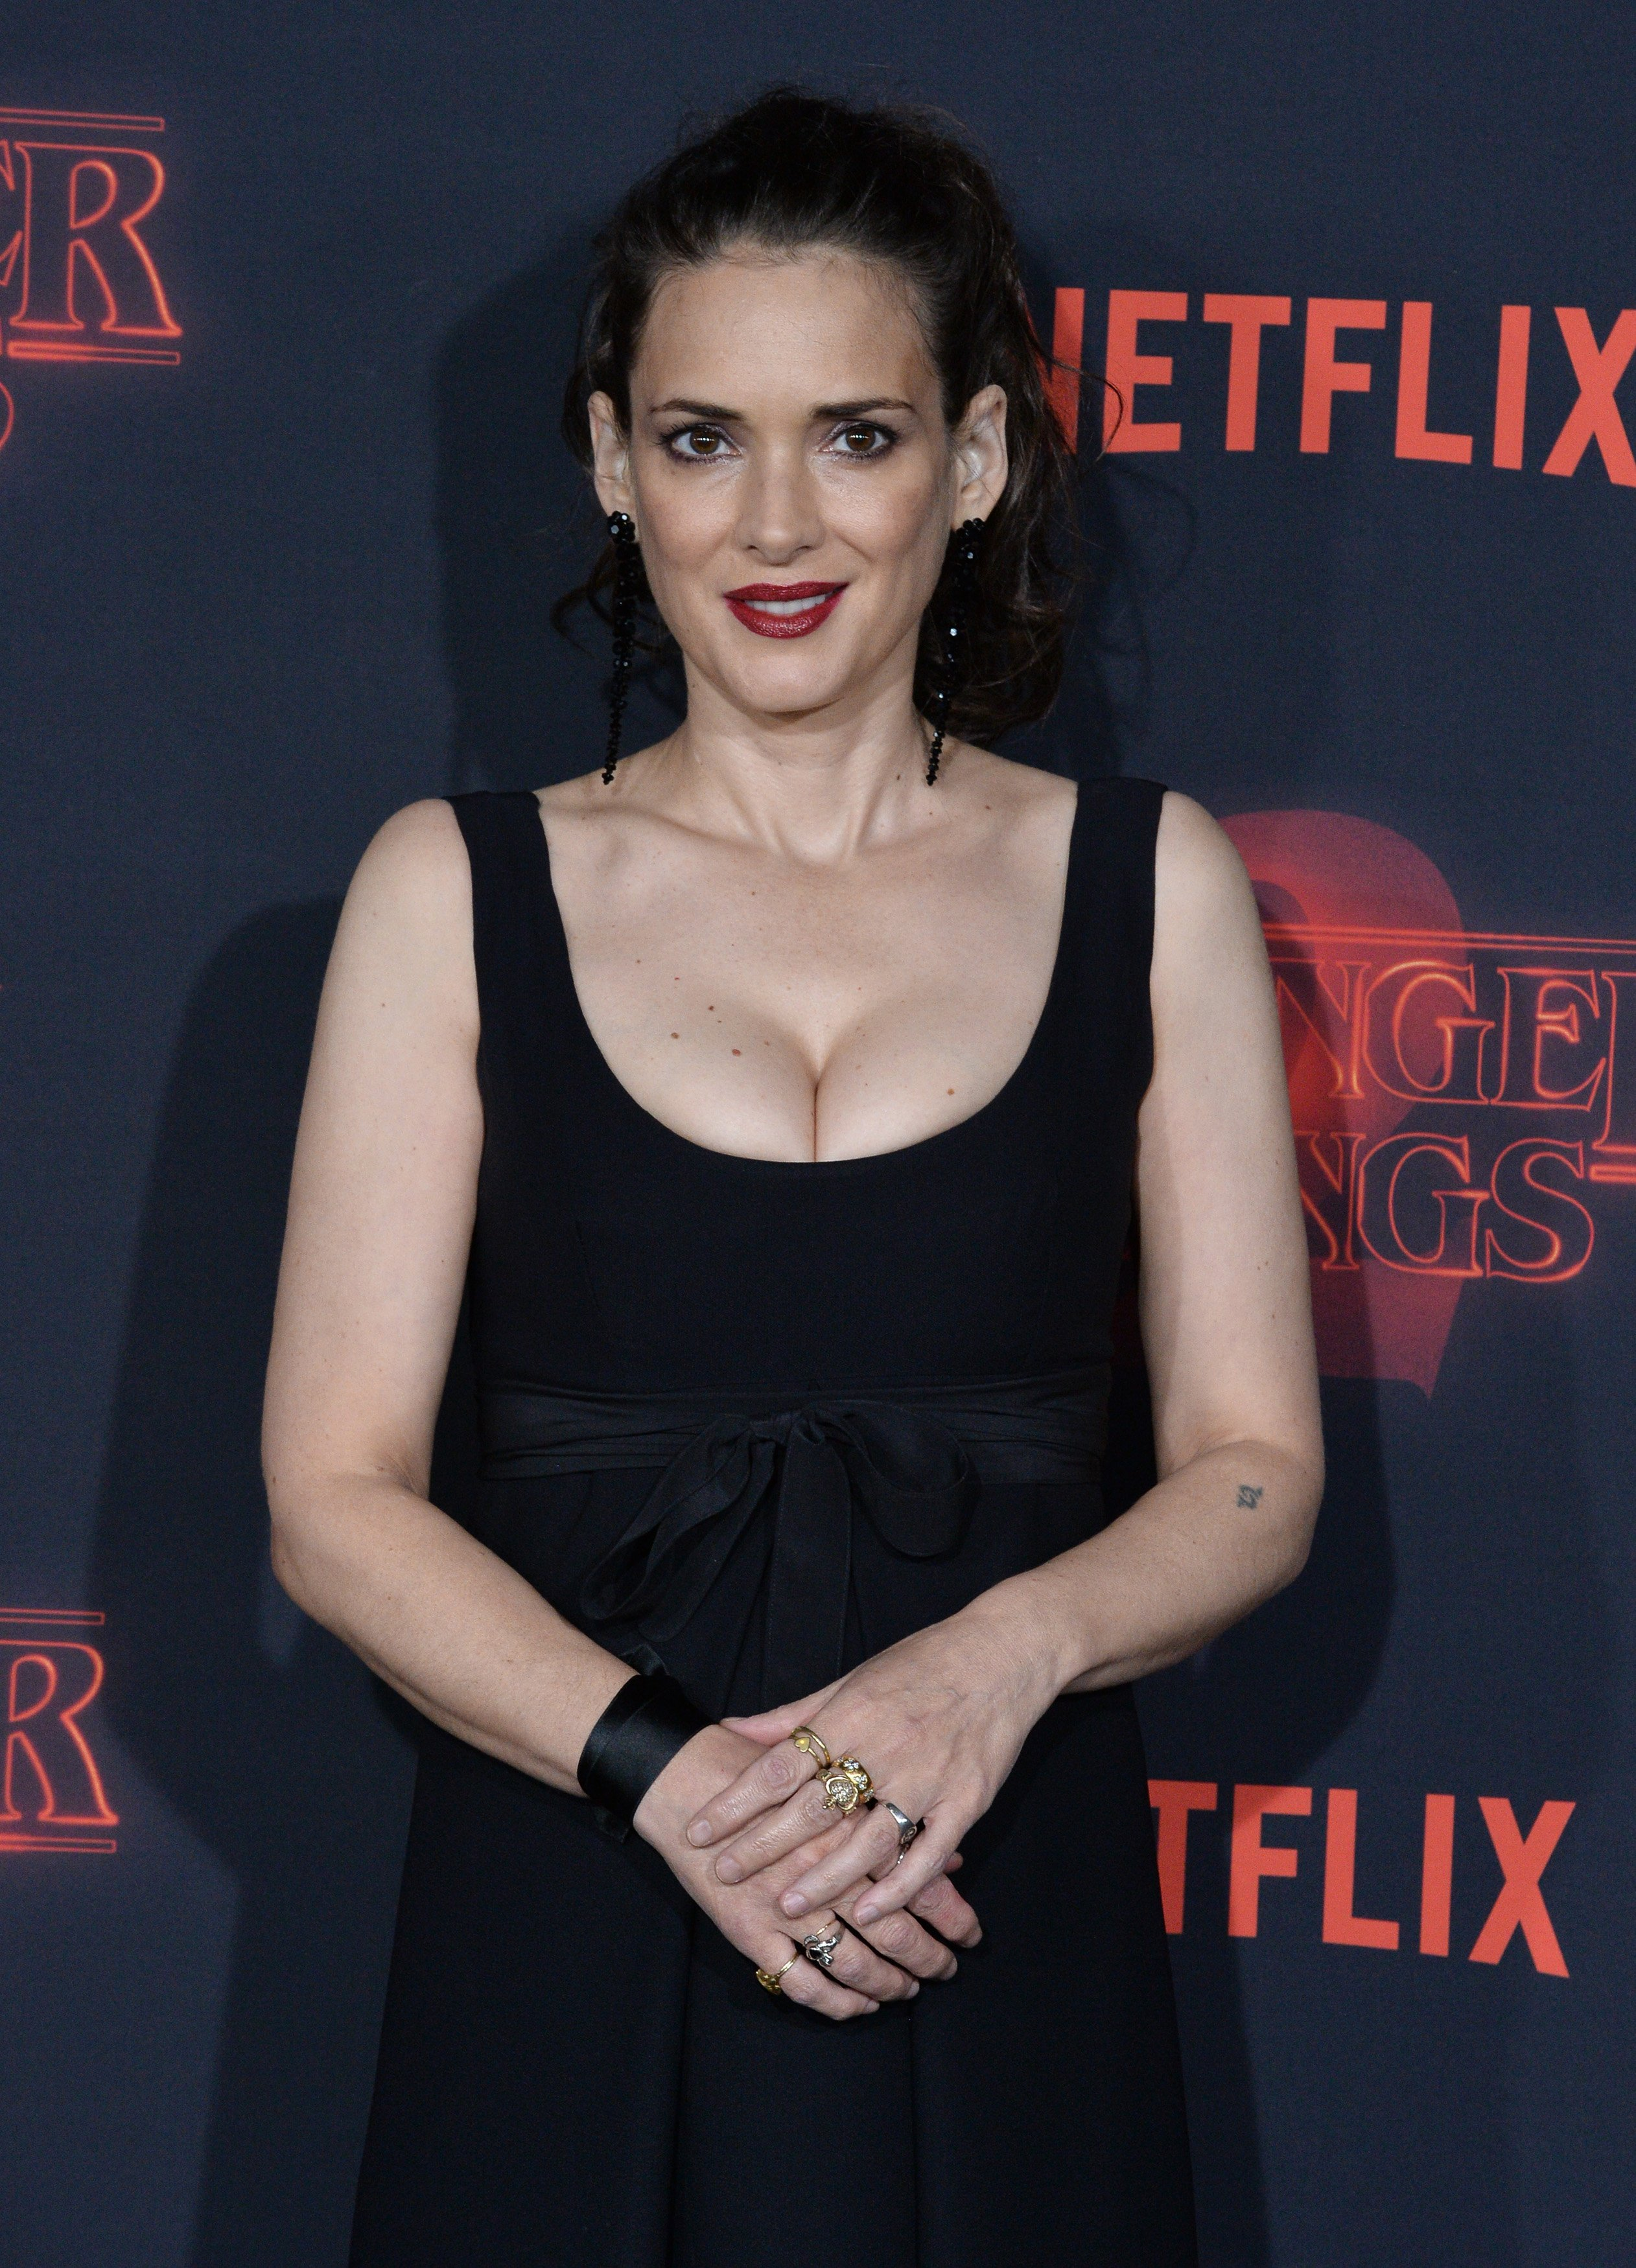 Cast member Winona Ryder attends the premiere of Netflix's